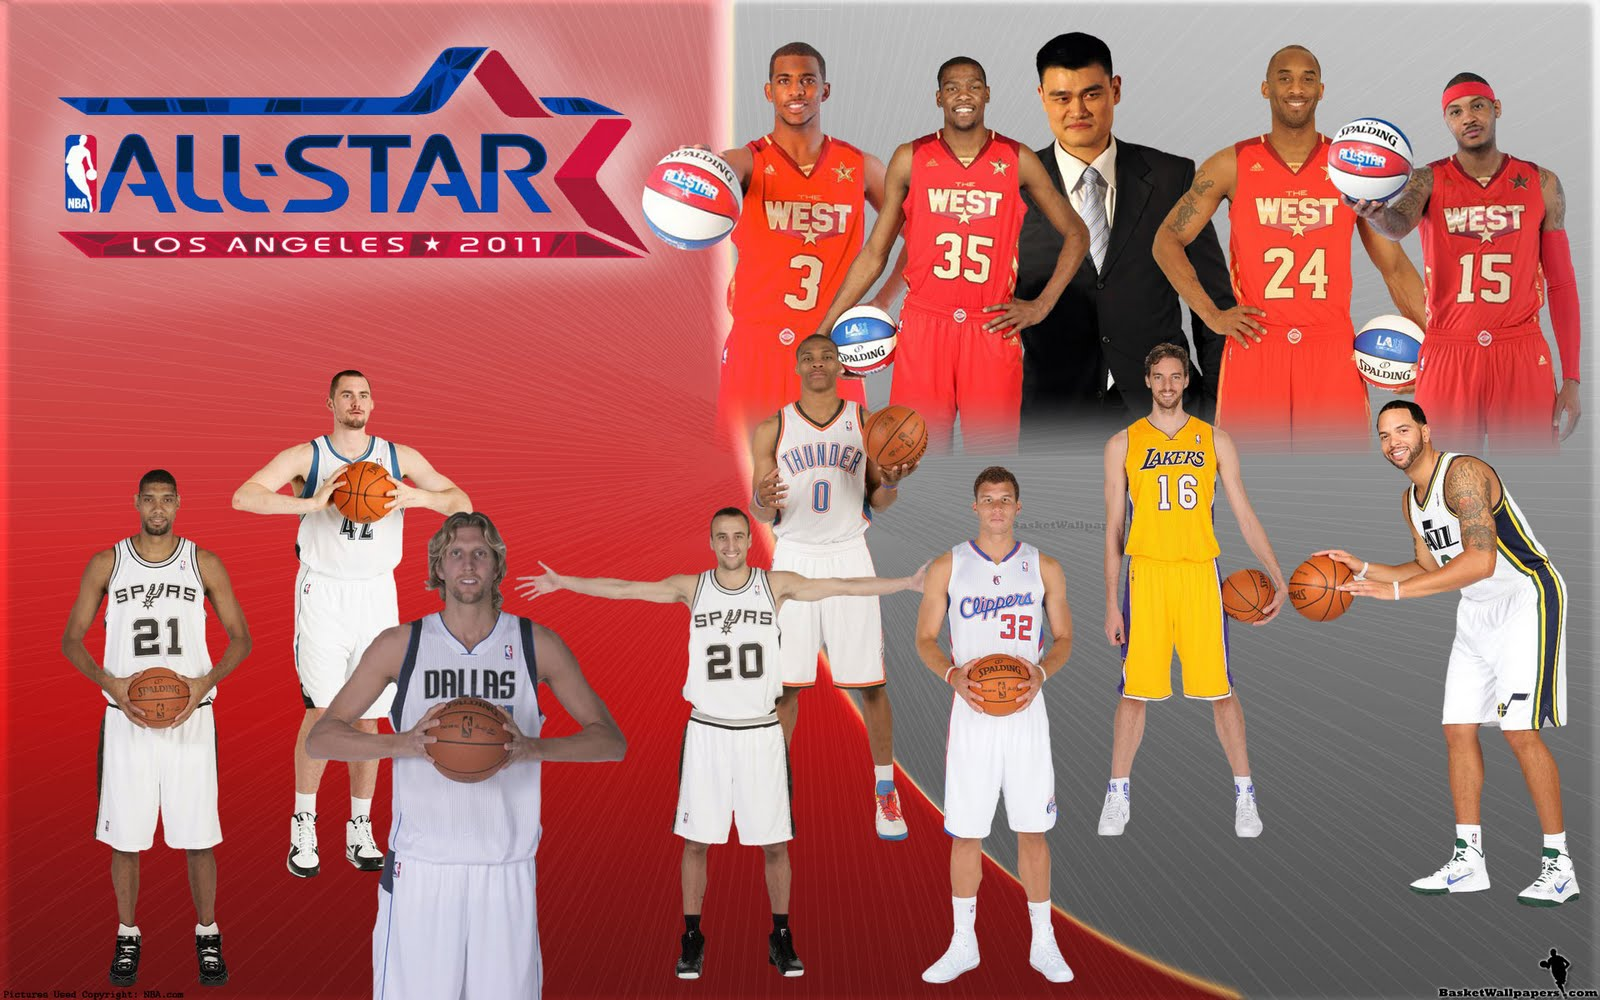 http://4.bp.blogspot.com/-_I2ozKNTvB8/Tj7k443IOrI/AAAAAAAABTY/nfN-6-_R5No/s1600/NBA-All-Star-2011-Western-Conference-Team-Widescreen-Wallpaper.jpg